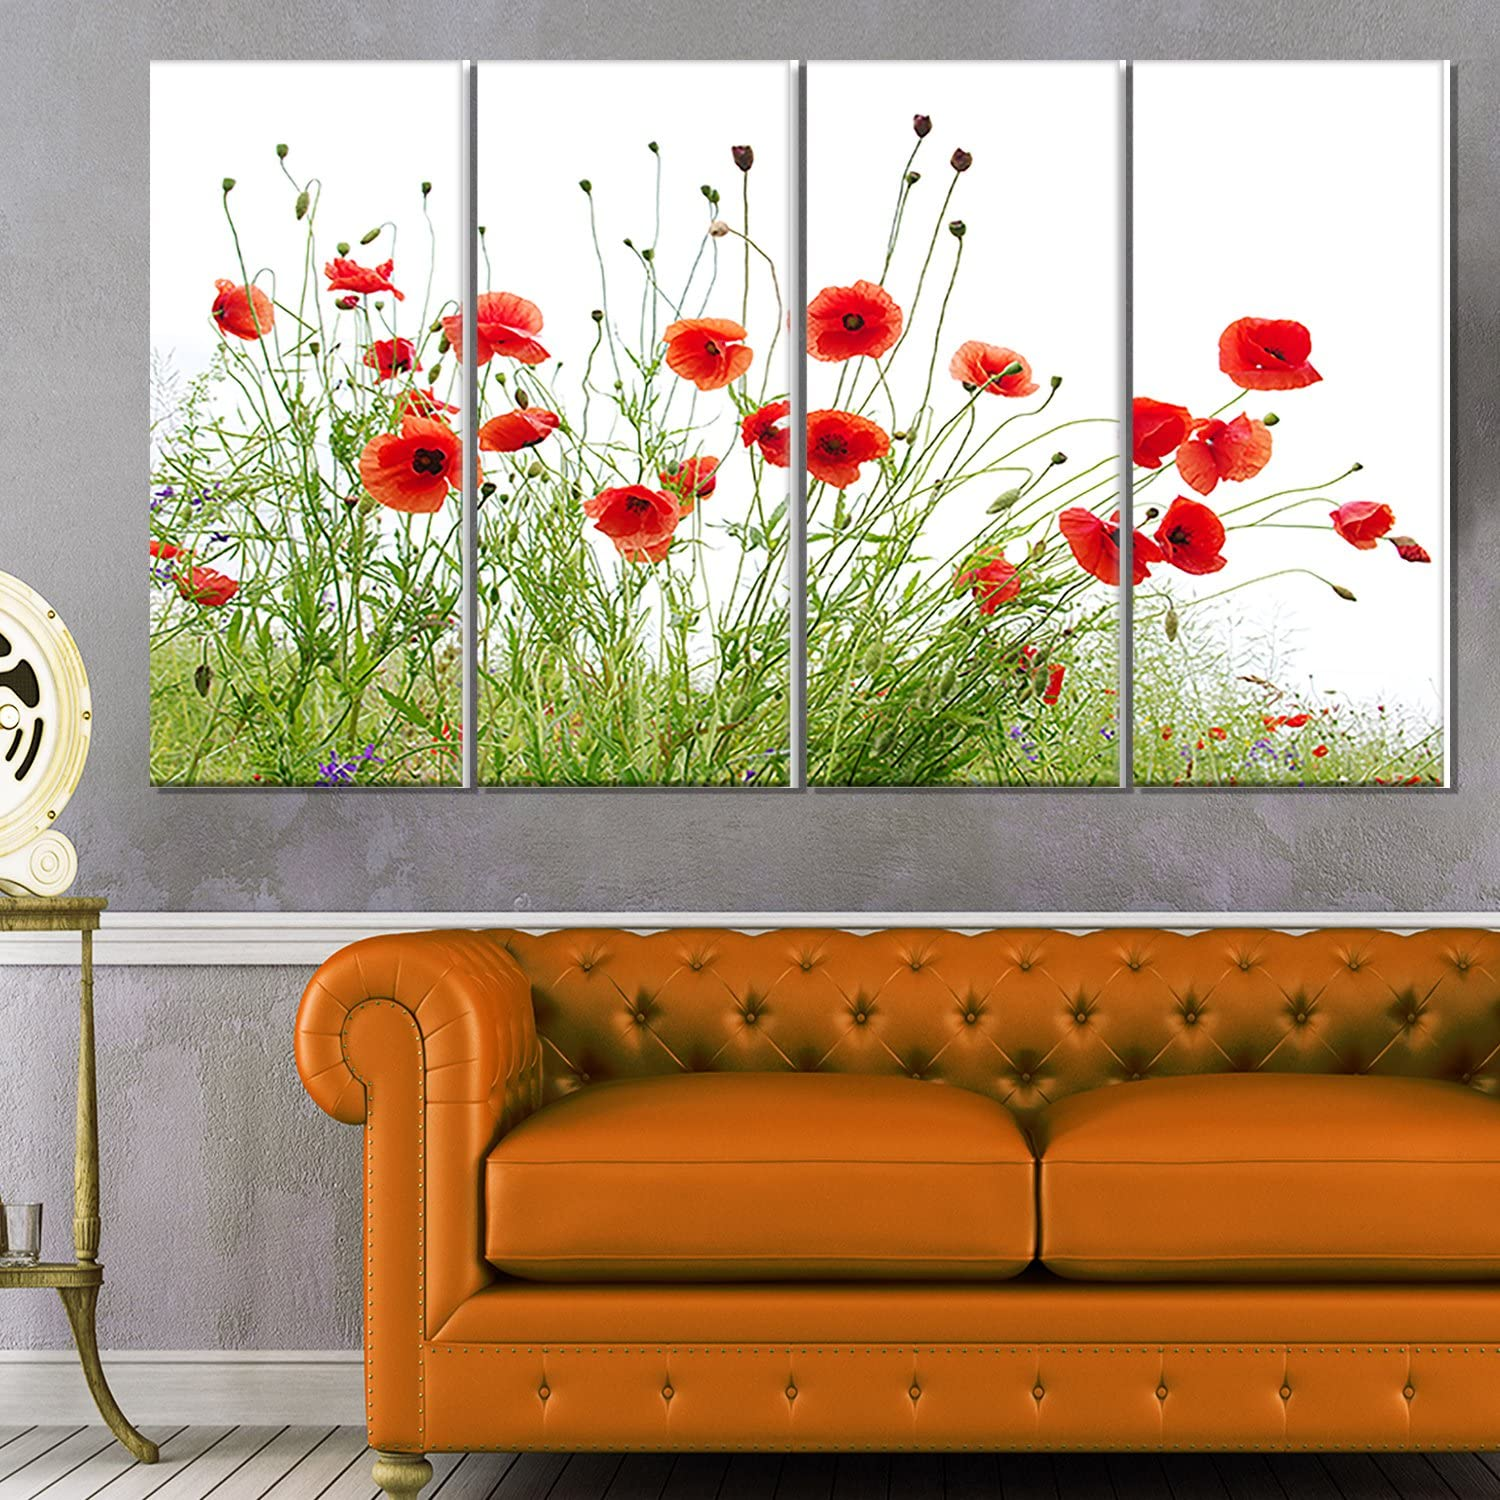 Designart Poppies on White Large discharge sale Glossy 5 ☆ popular Background-Modern Floral Metal